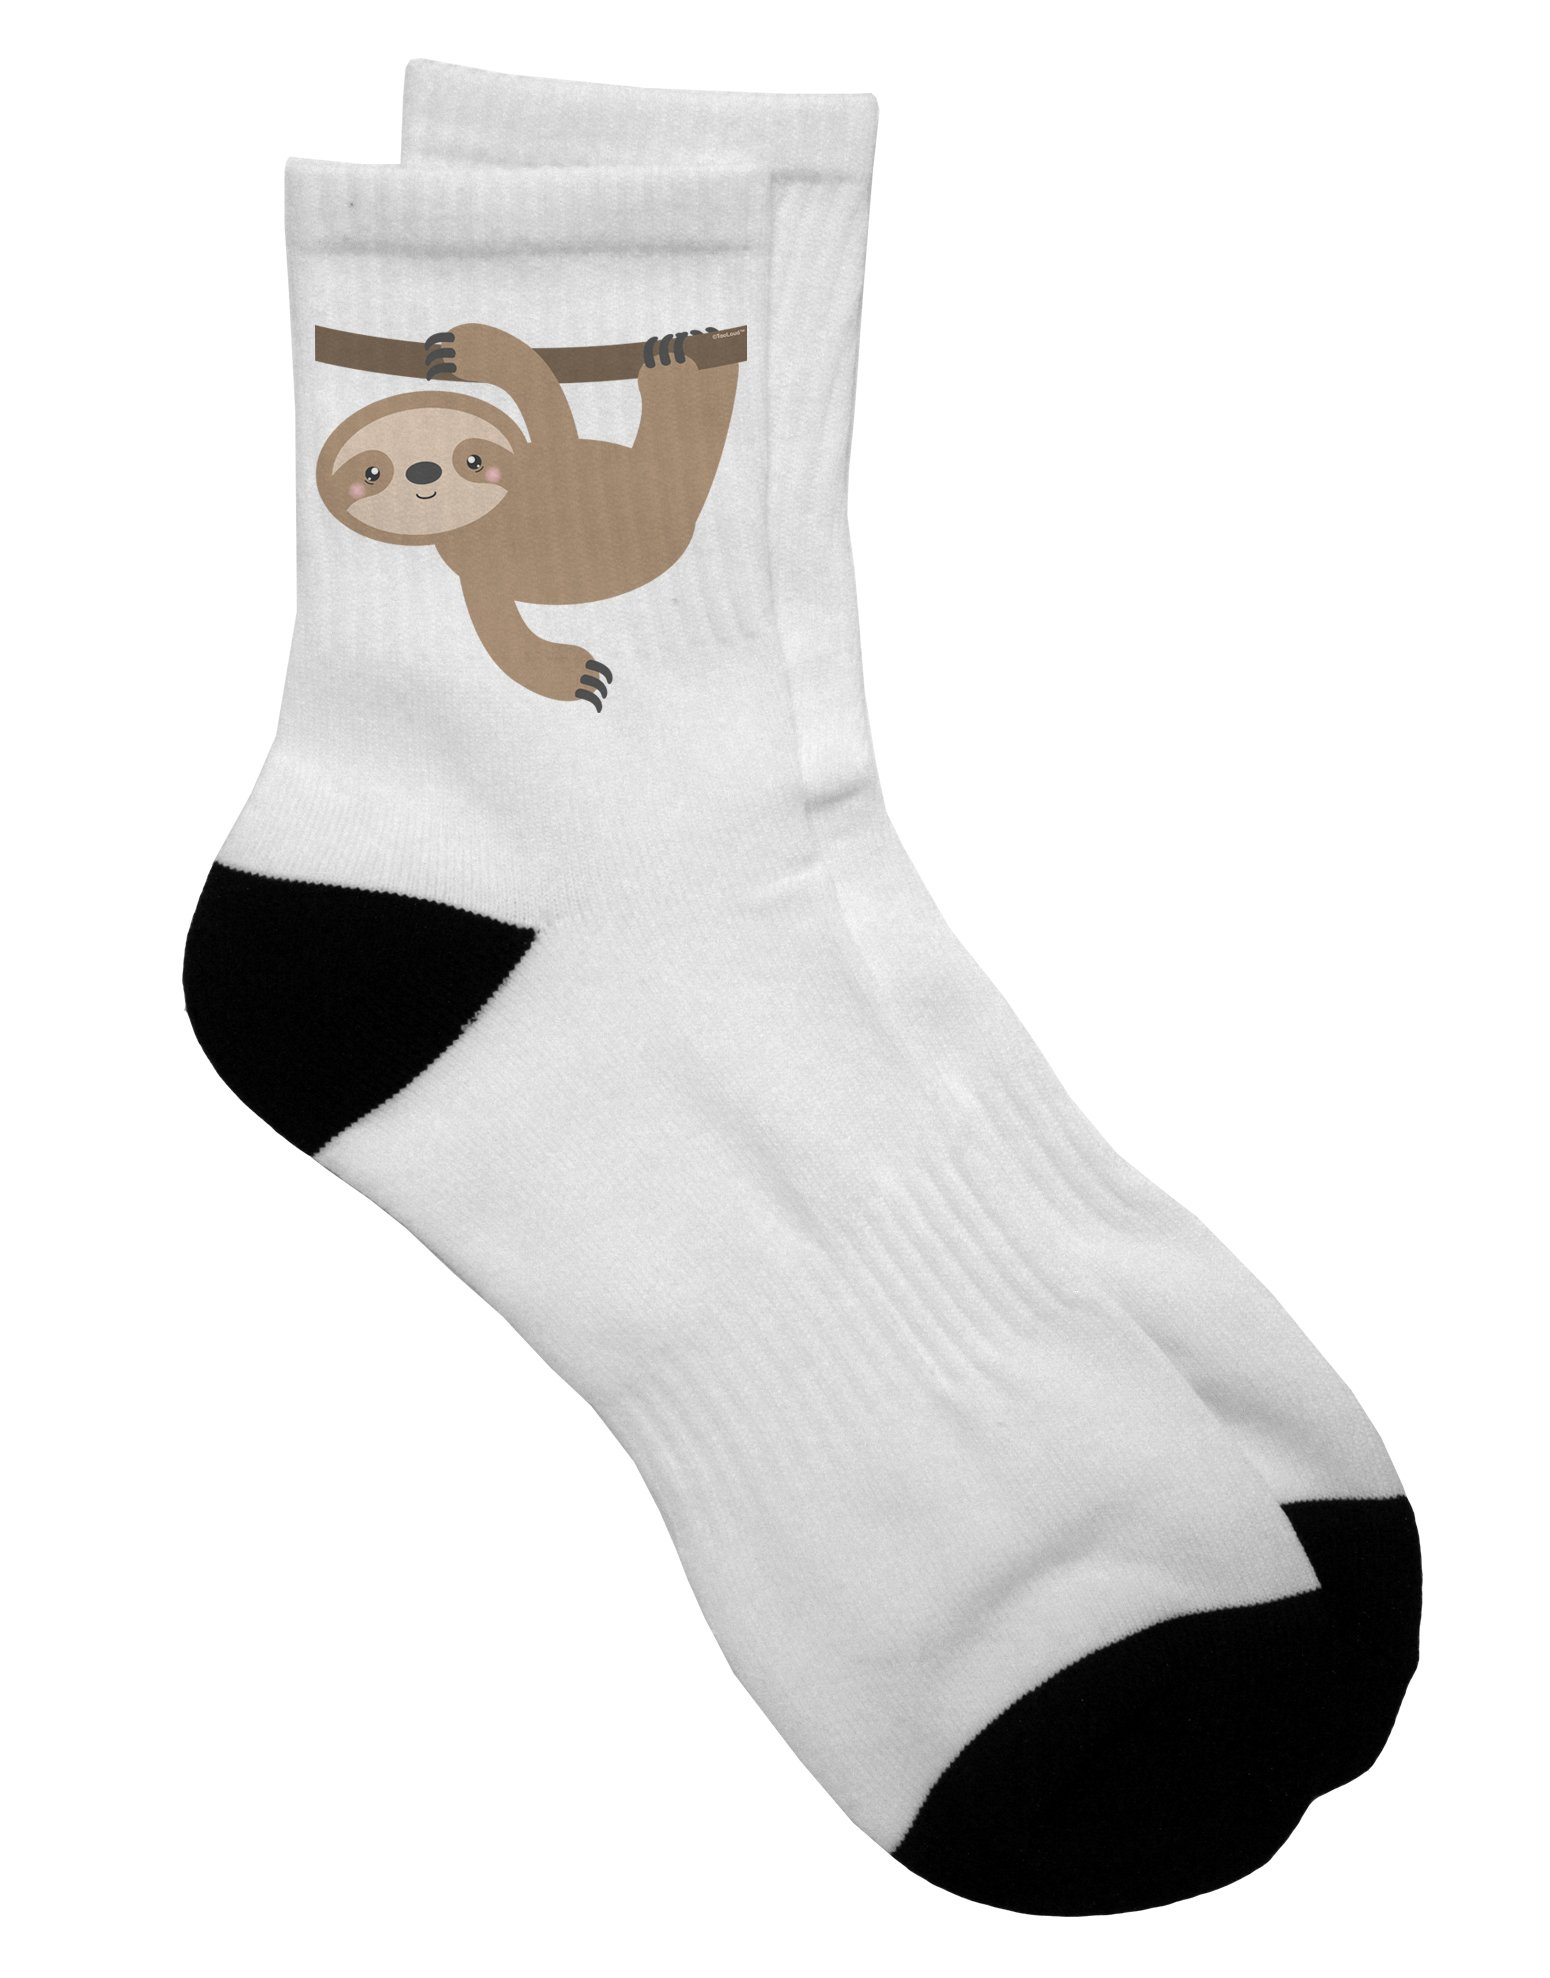 Tooloud Cute Hanging Sloth Adult Short Socks - Select Your Size -